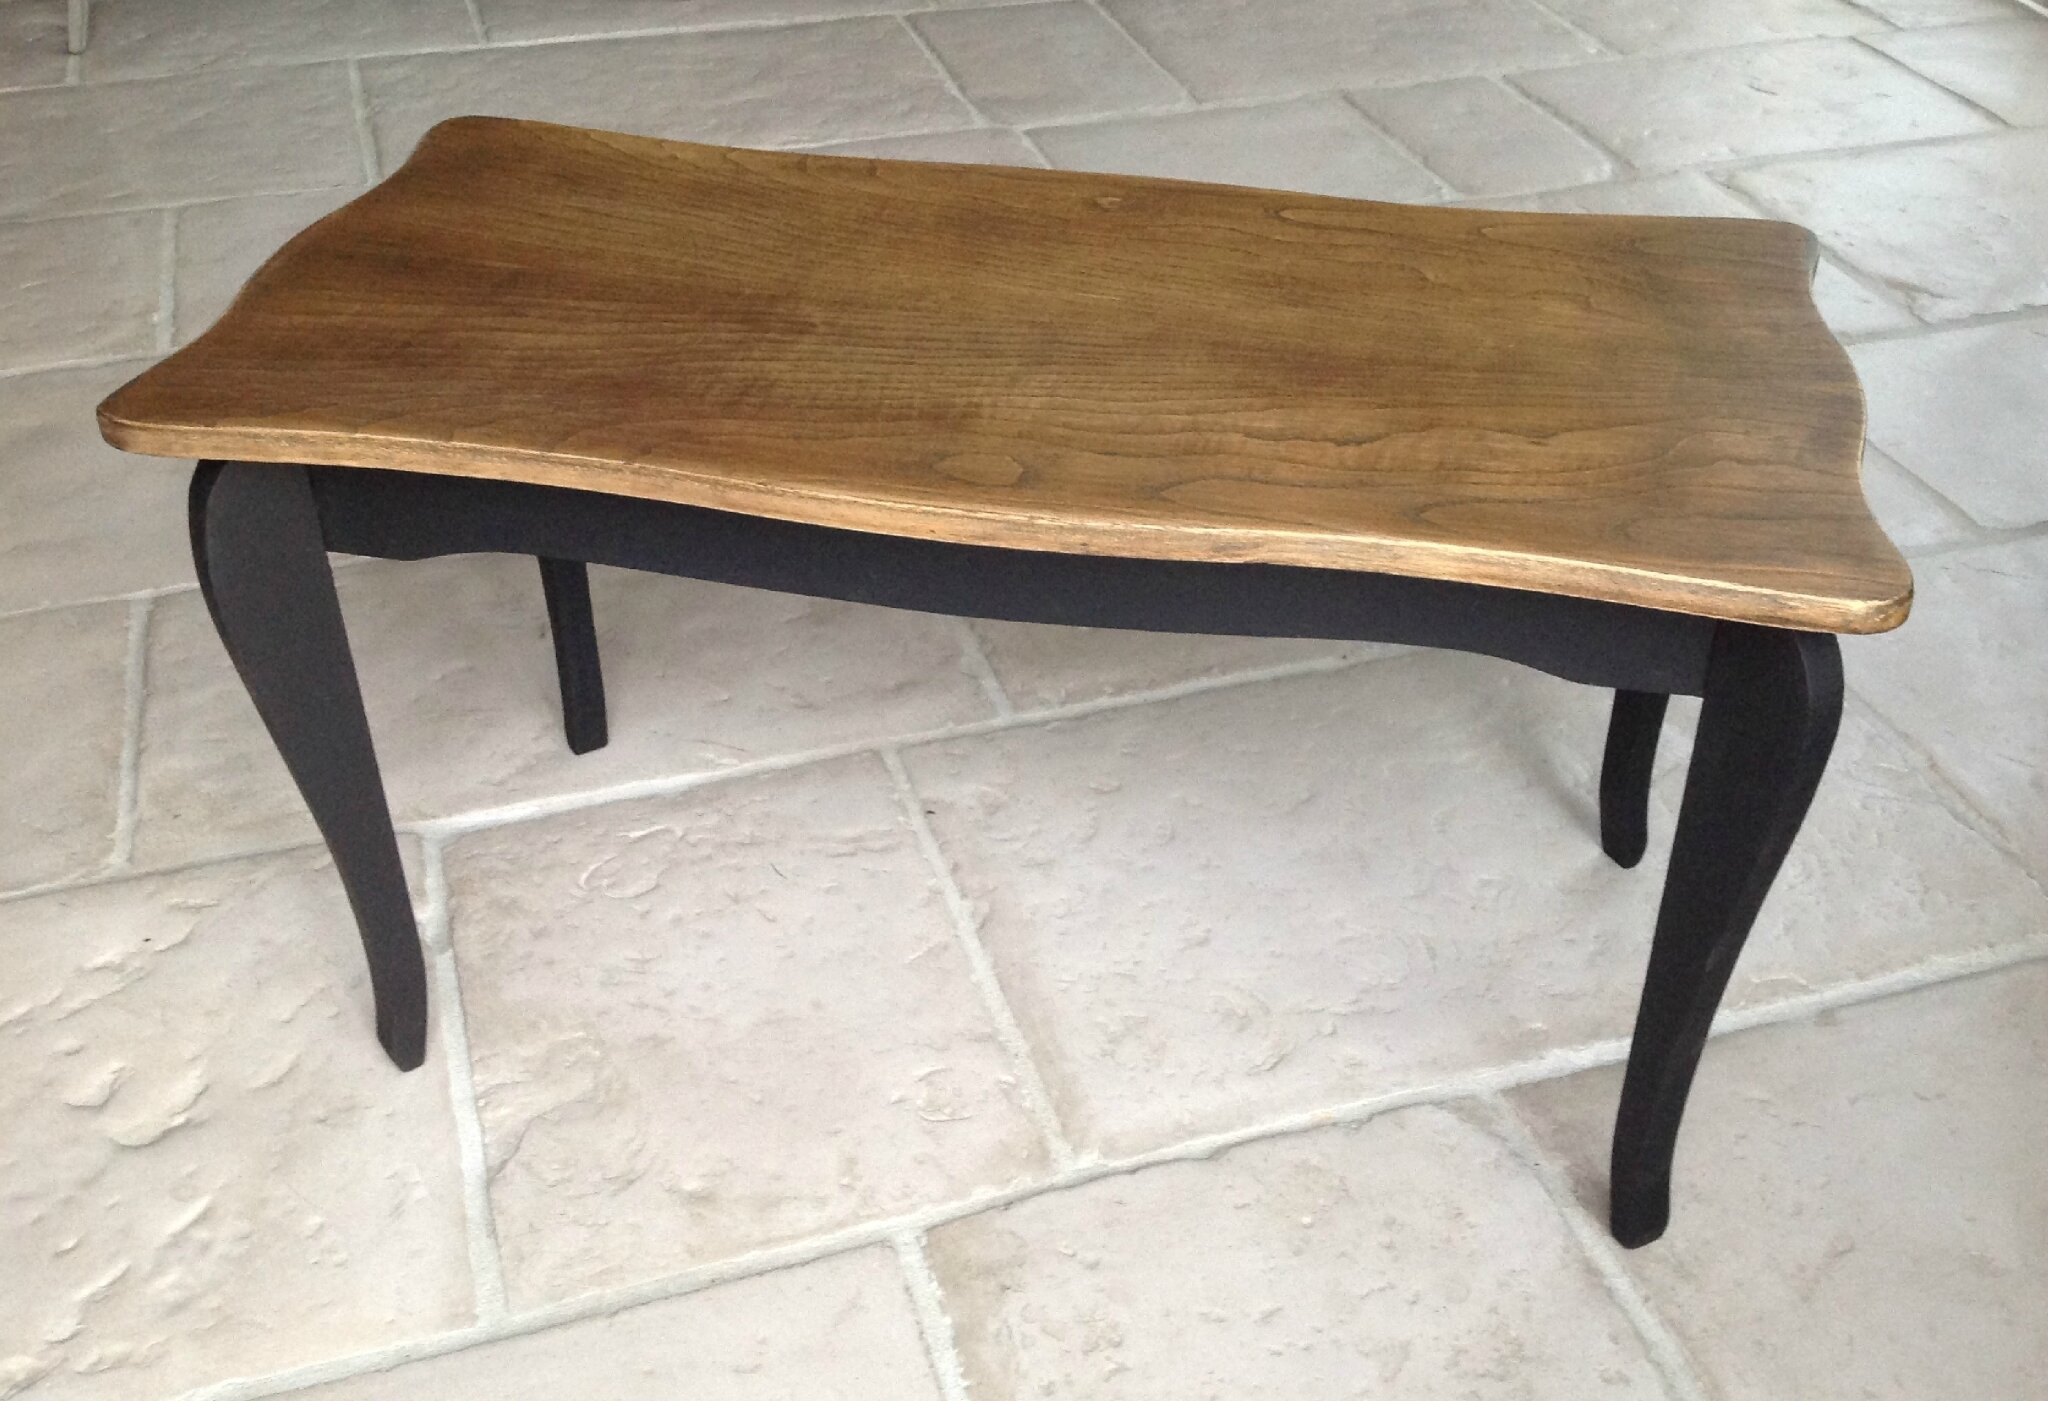 Beautiful Table En Bois Noir #8: TABLE BASSE EN BOIS DOUBLE PATINE : NOIR U0026 BOIS NATUREL